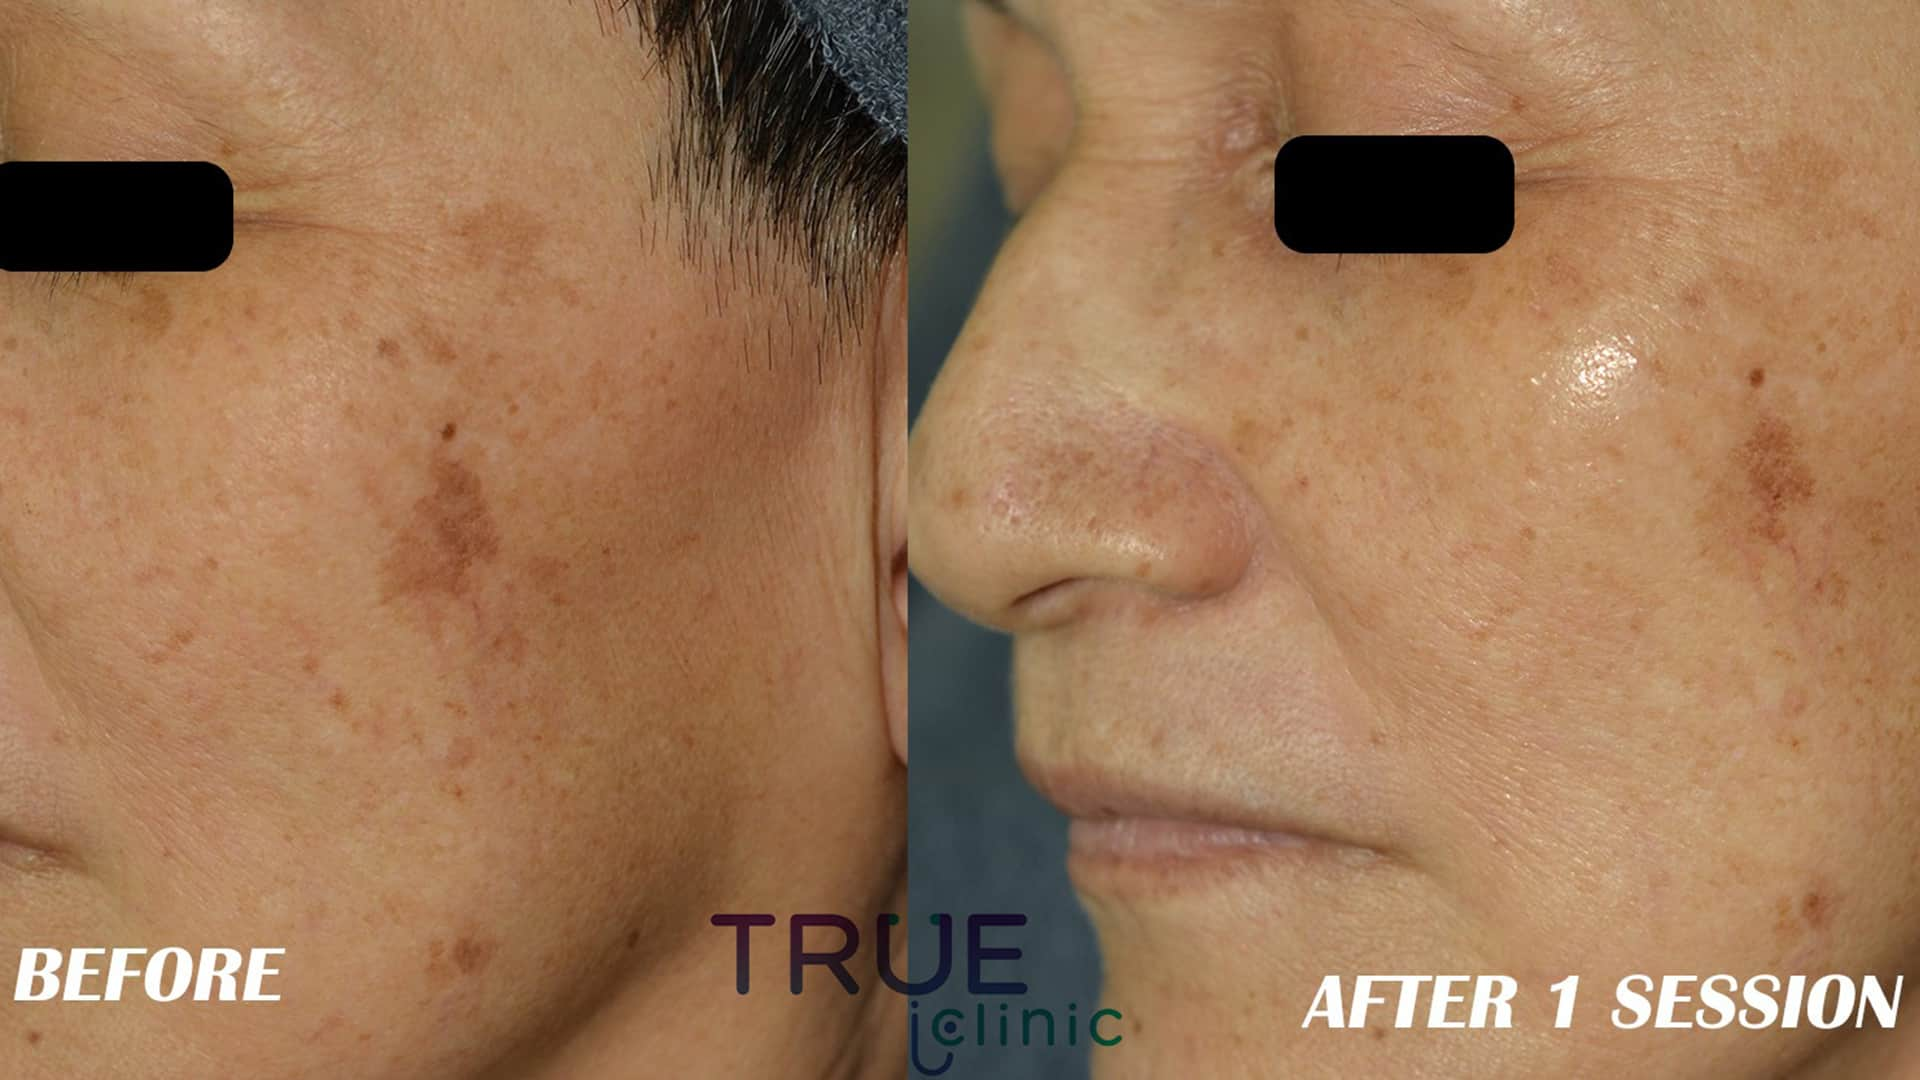 Face treatment PRE AND POST